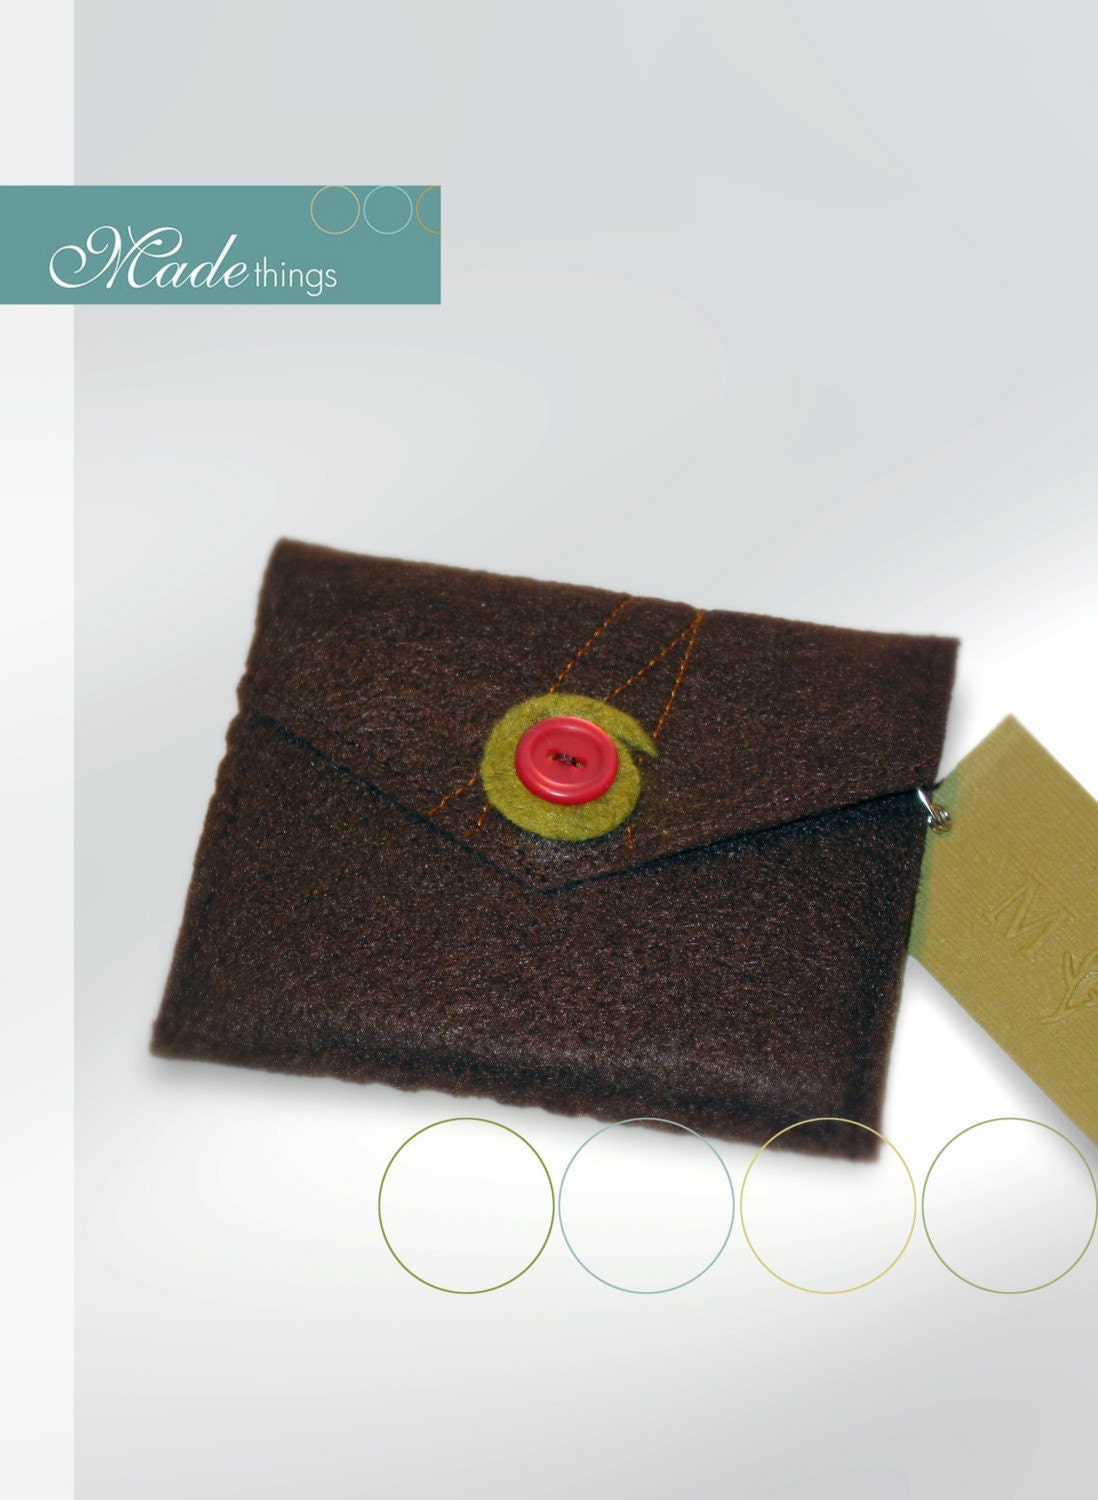 sweet little felt purse (chocolate brown, gold pattern with pink button)